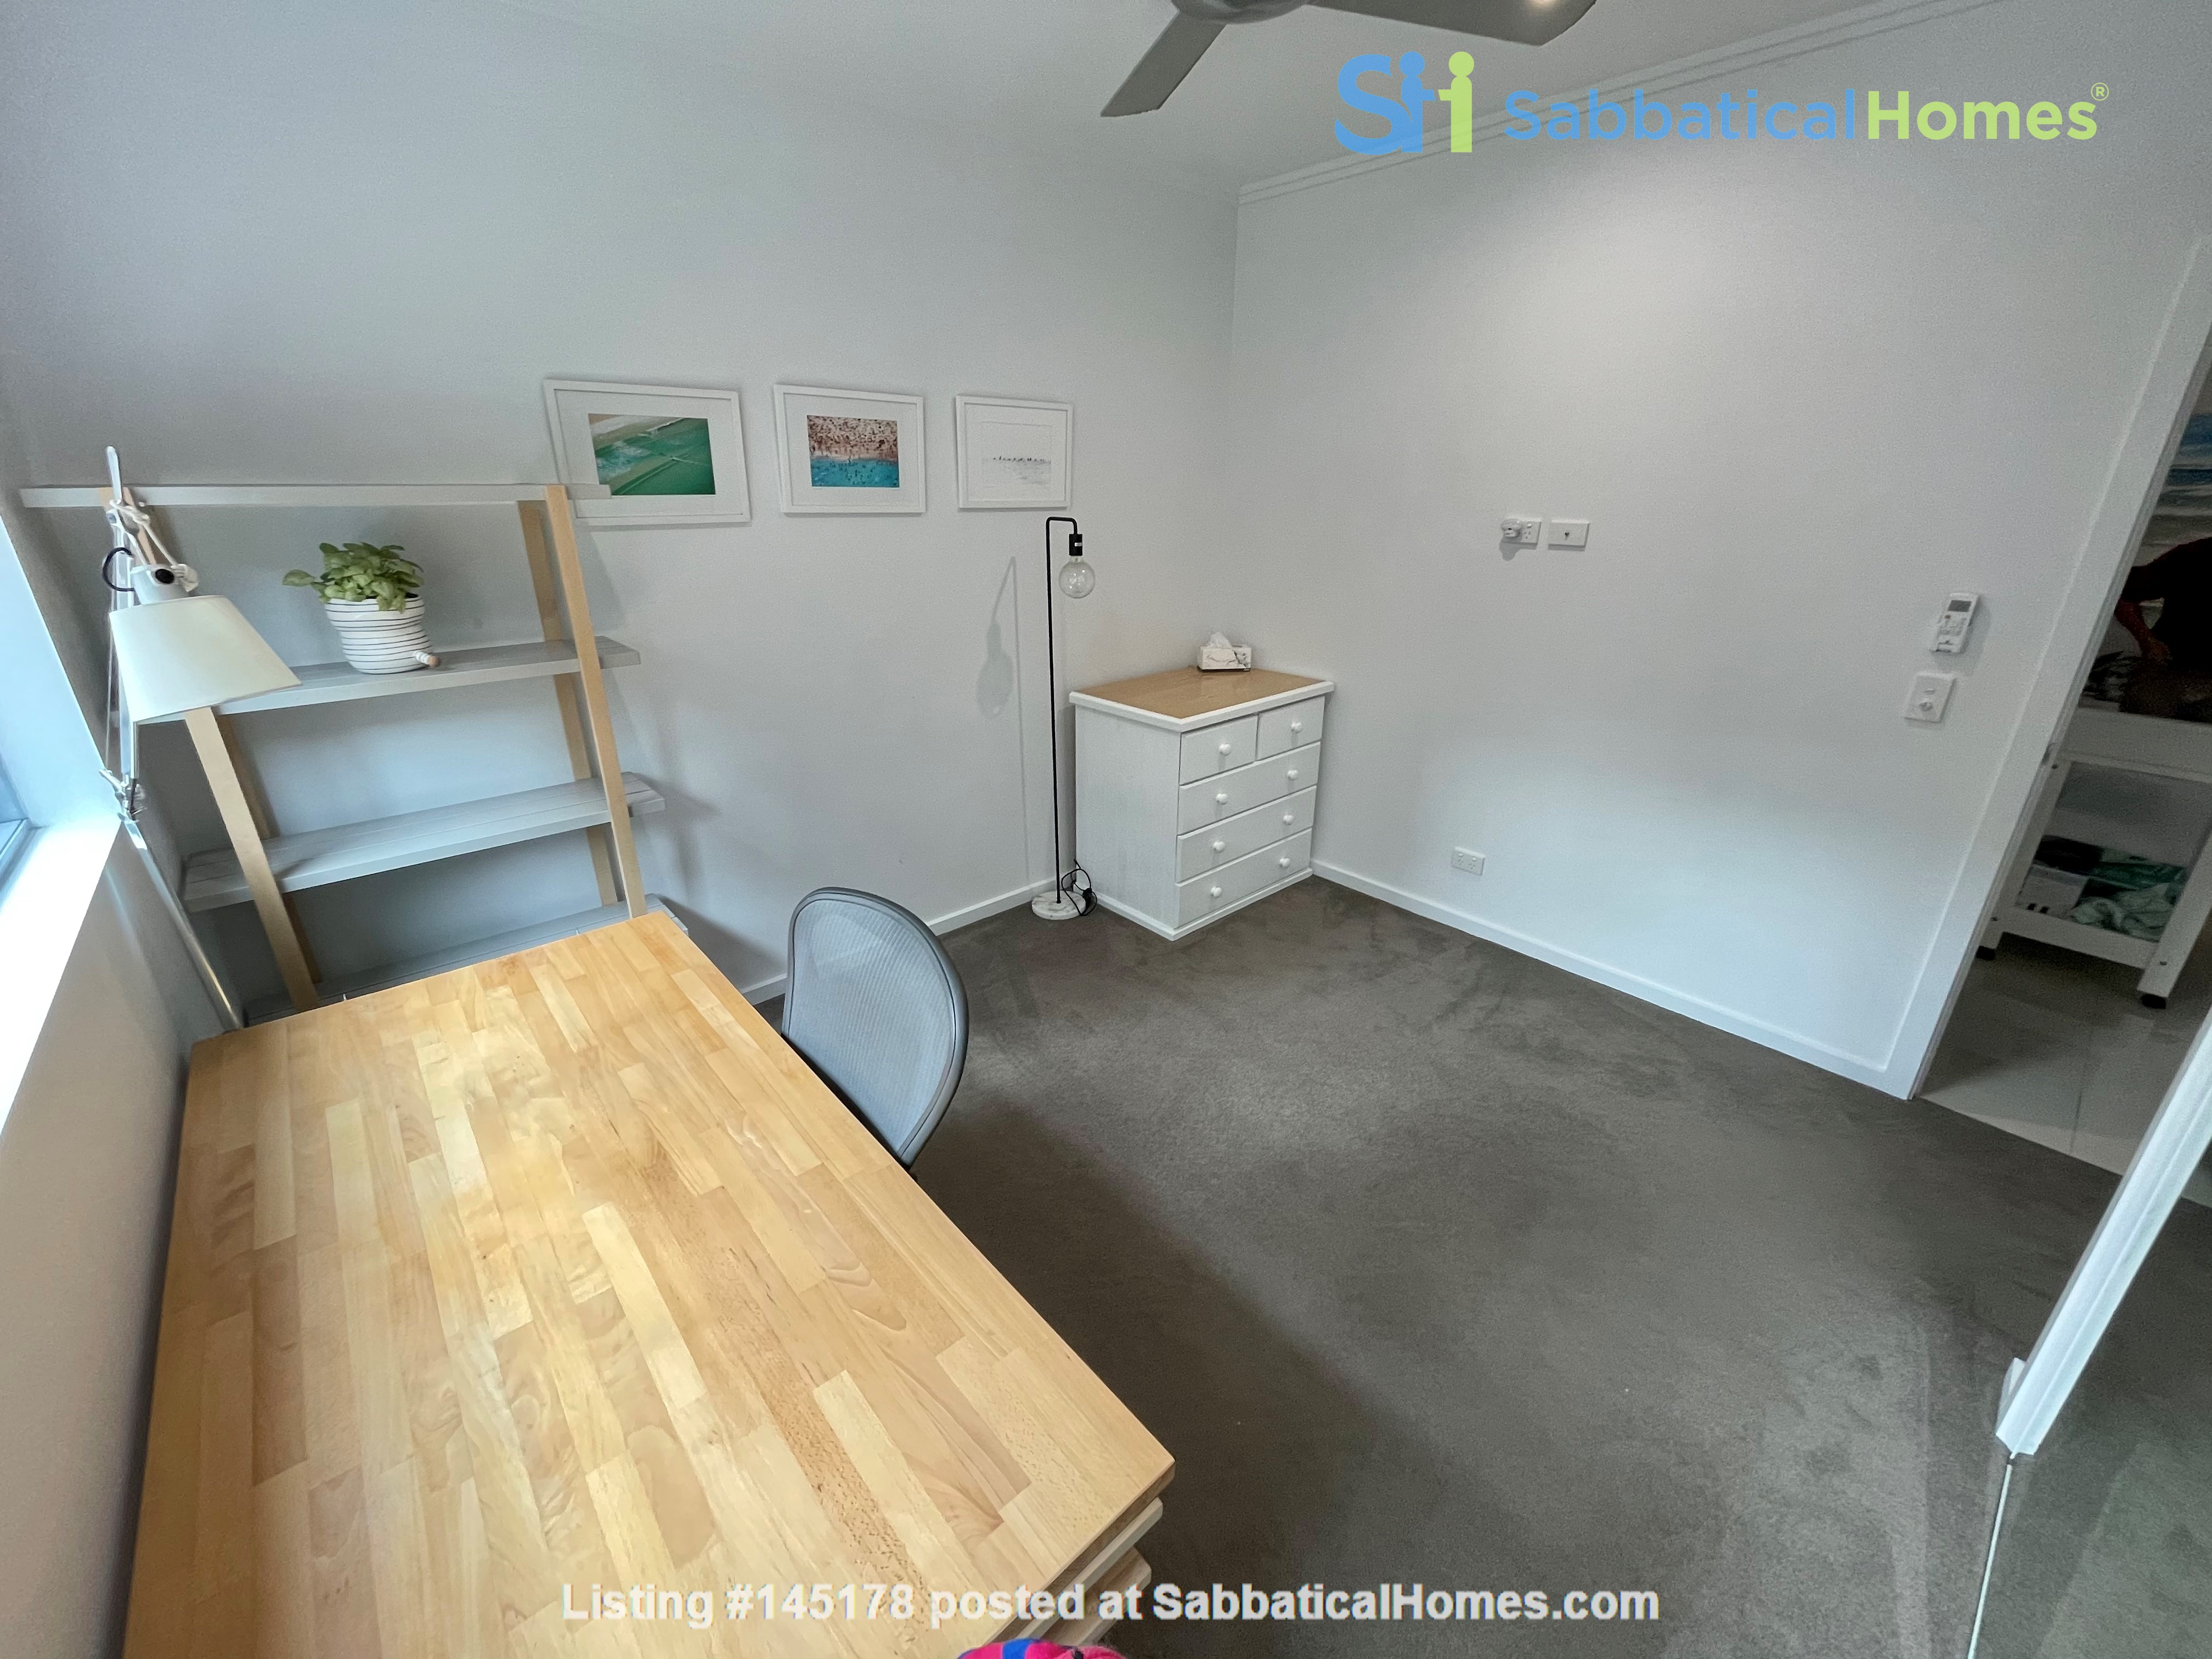 Lovely 2br apartment with large terrace/garden. 5km from Brisbane CBD Home Rental in Coorparoo, Queensland, Australia 9